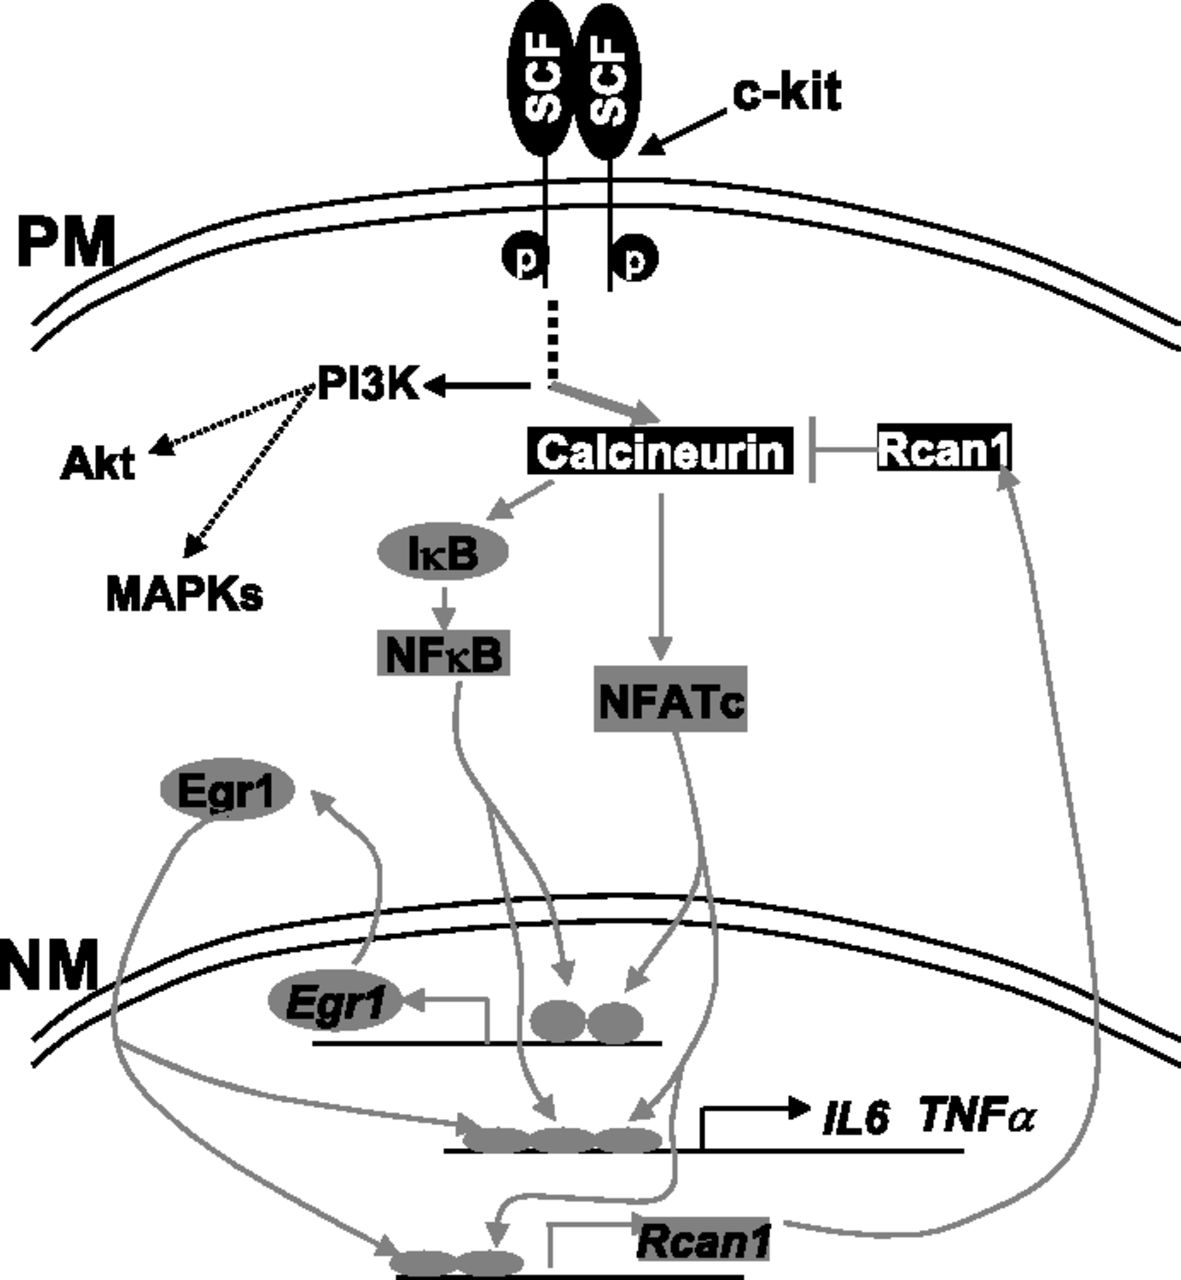 Valcote Blog Archive Calcineurin T Cell Activation